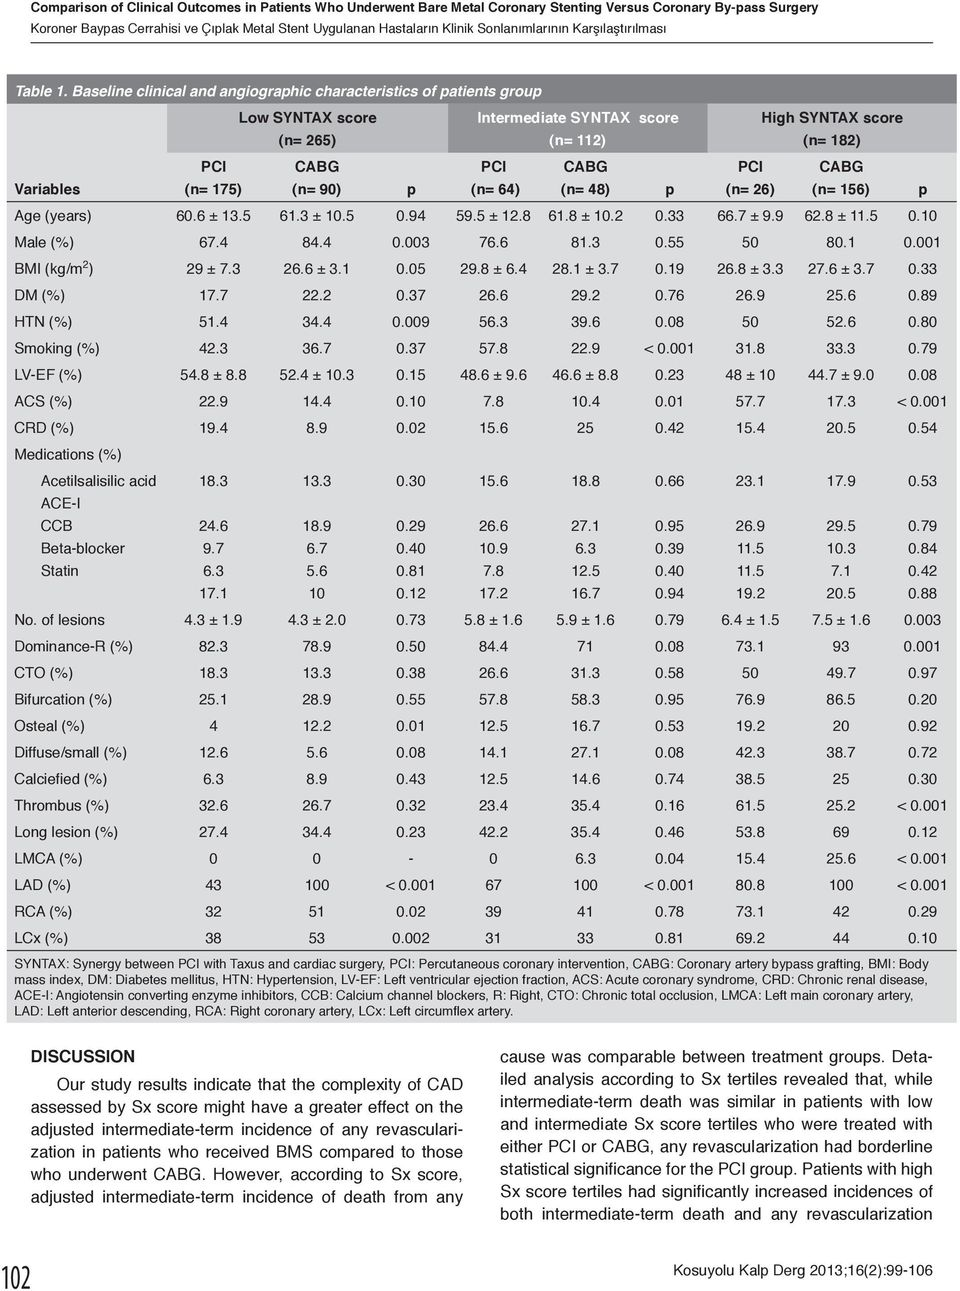 Baseline clinical and angiographic characteristics of patients group Low SYNTAX score (n= 265) Intermediate SYNTAX score (n= 112) High SYNTAX score (n= 182) Variables (n= 175) (n= 90) p (n= 64) (n=